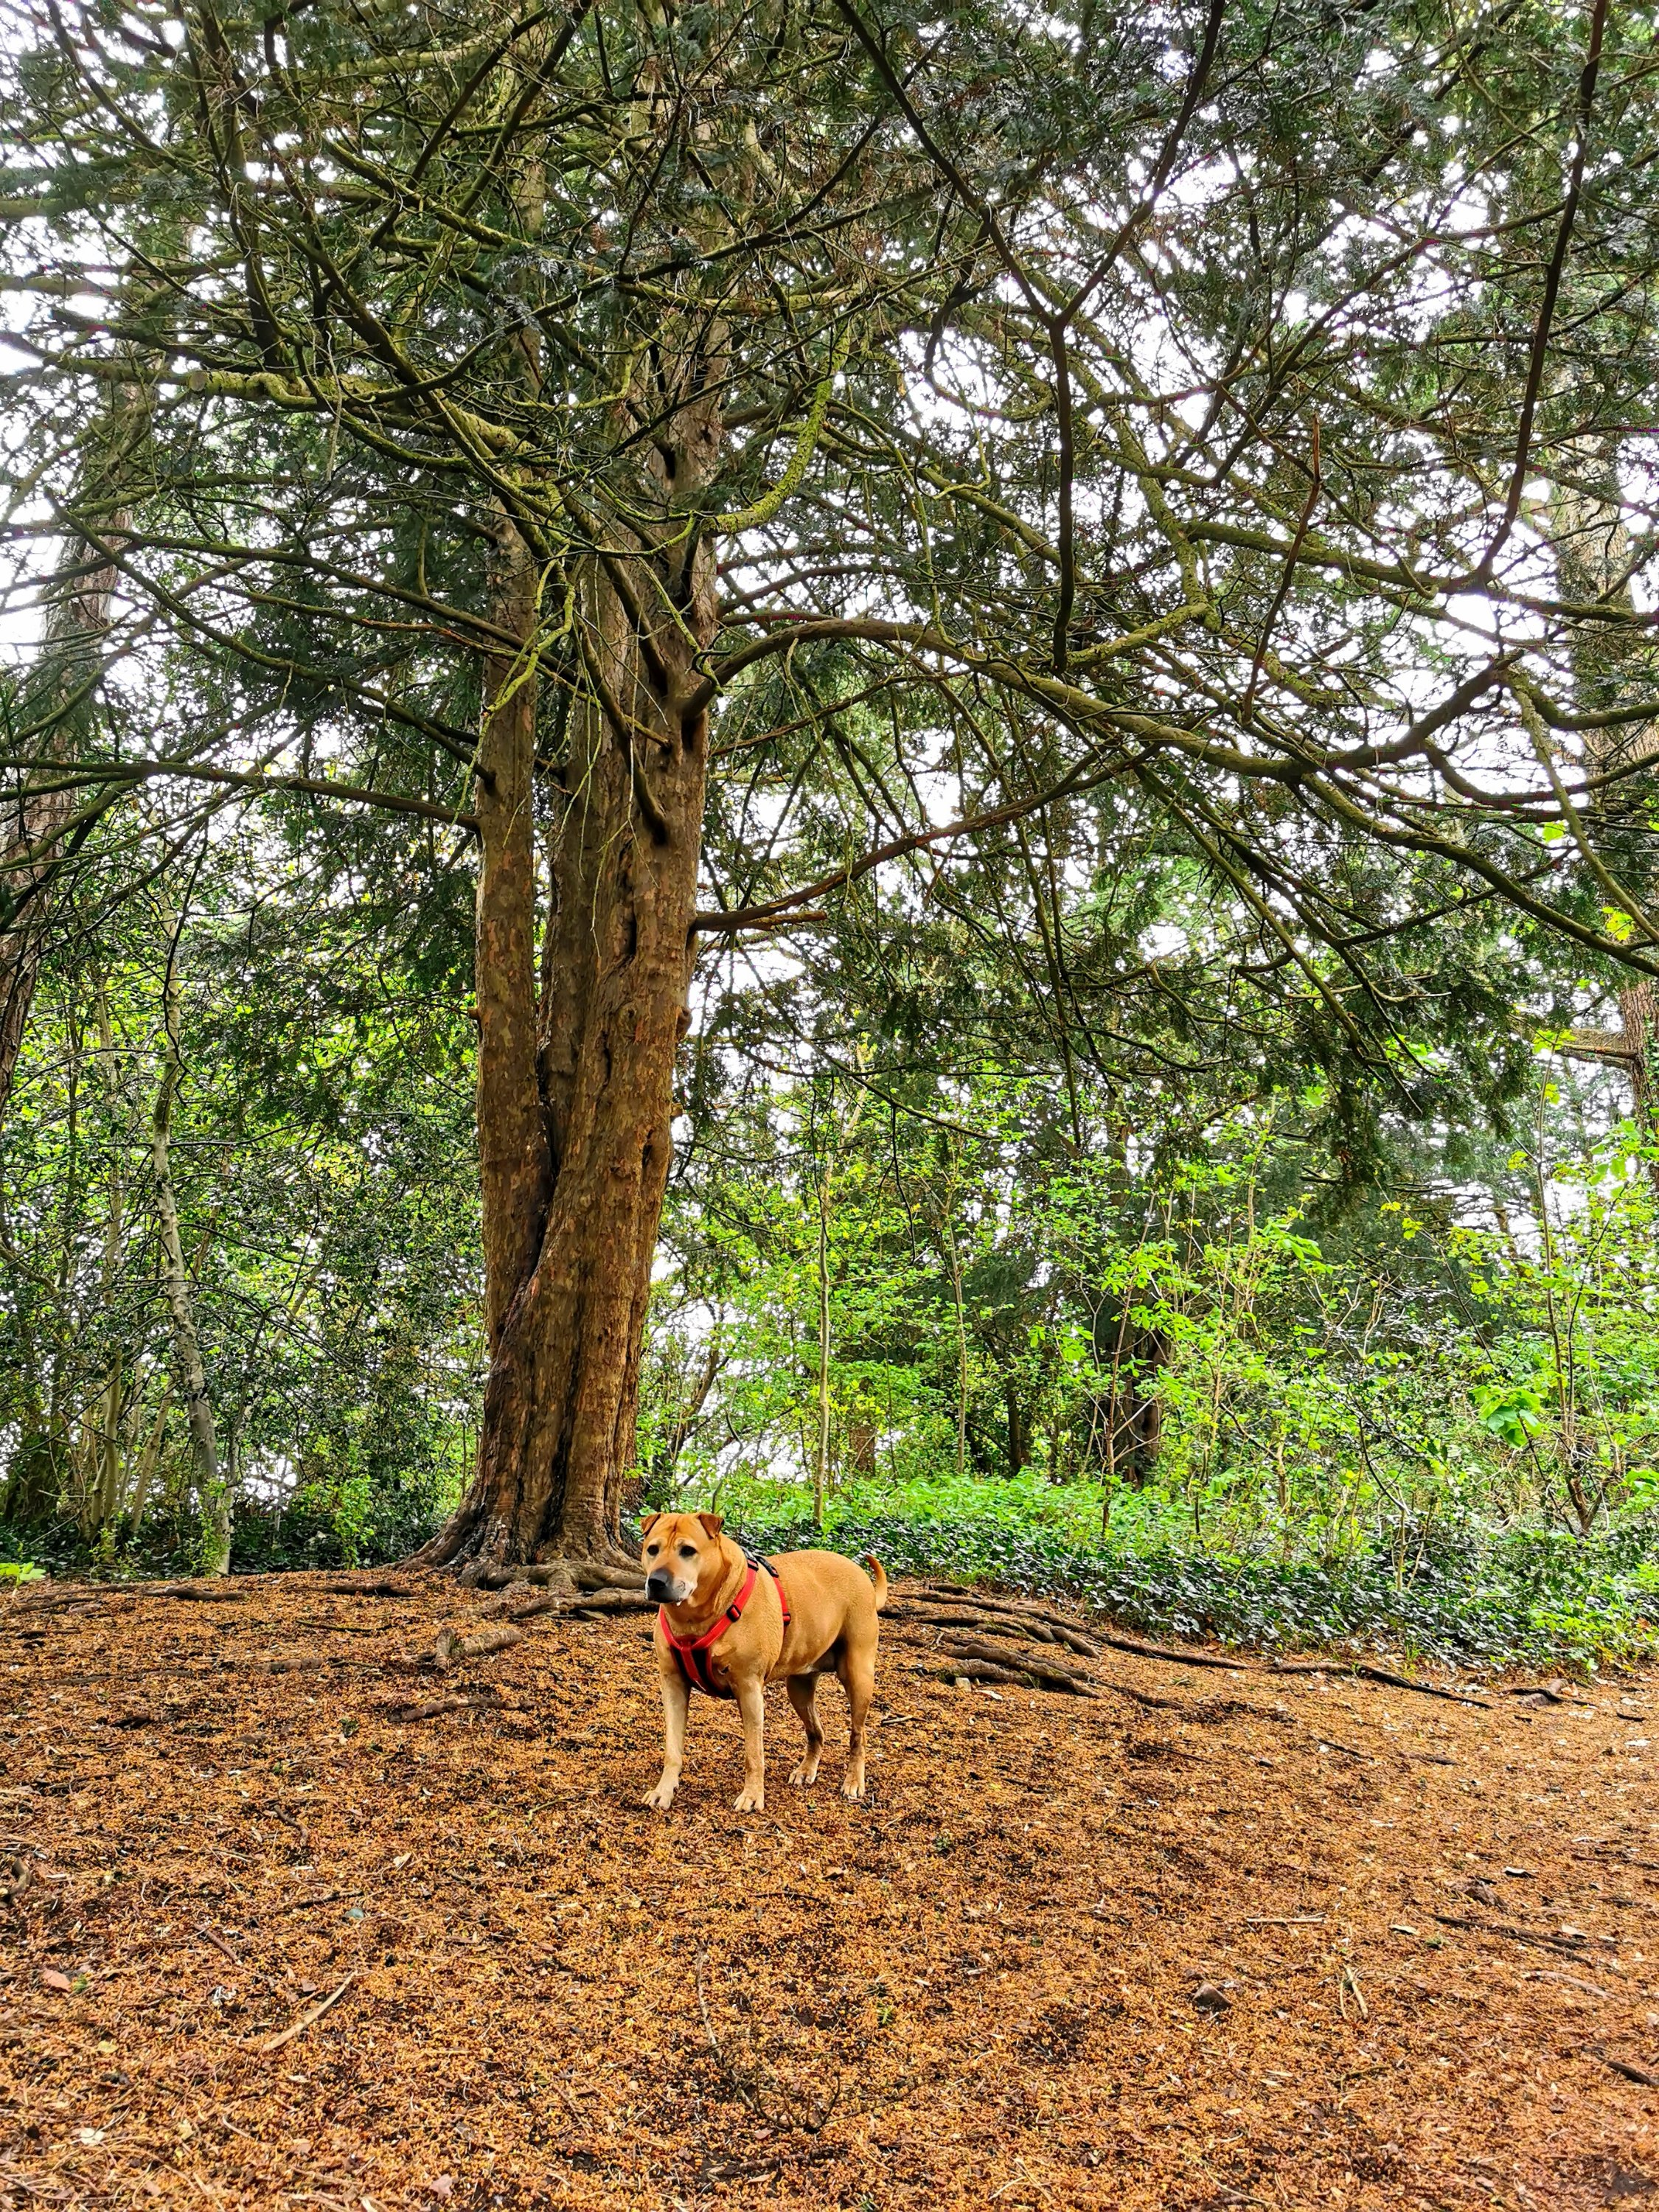 Sash next to a beautiful tree in Blaise Castle Estate